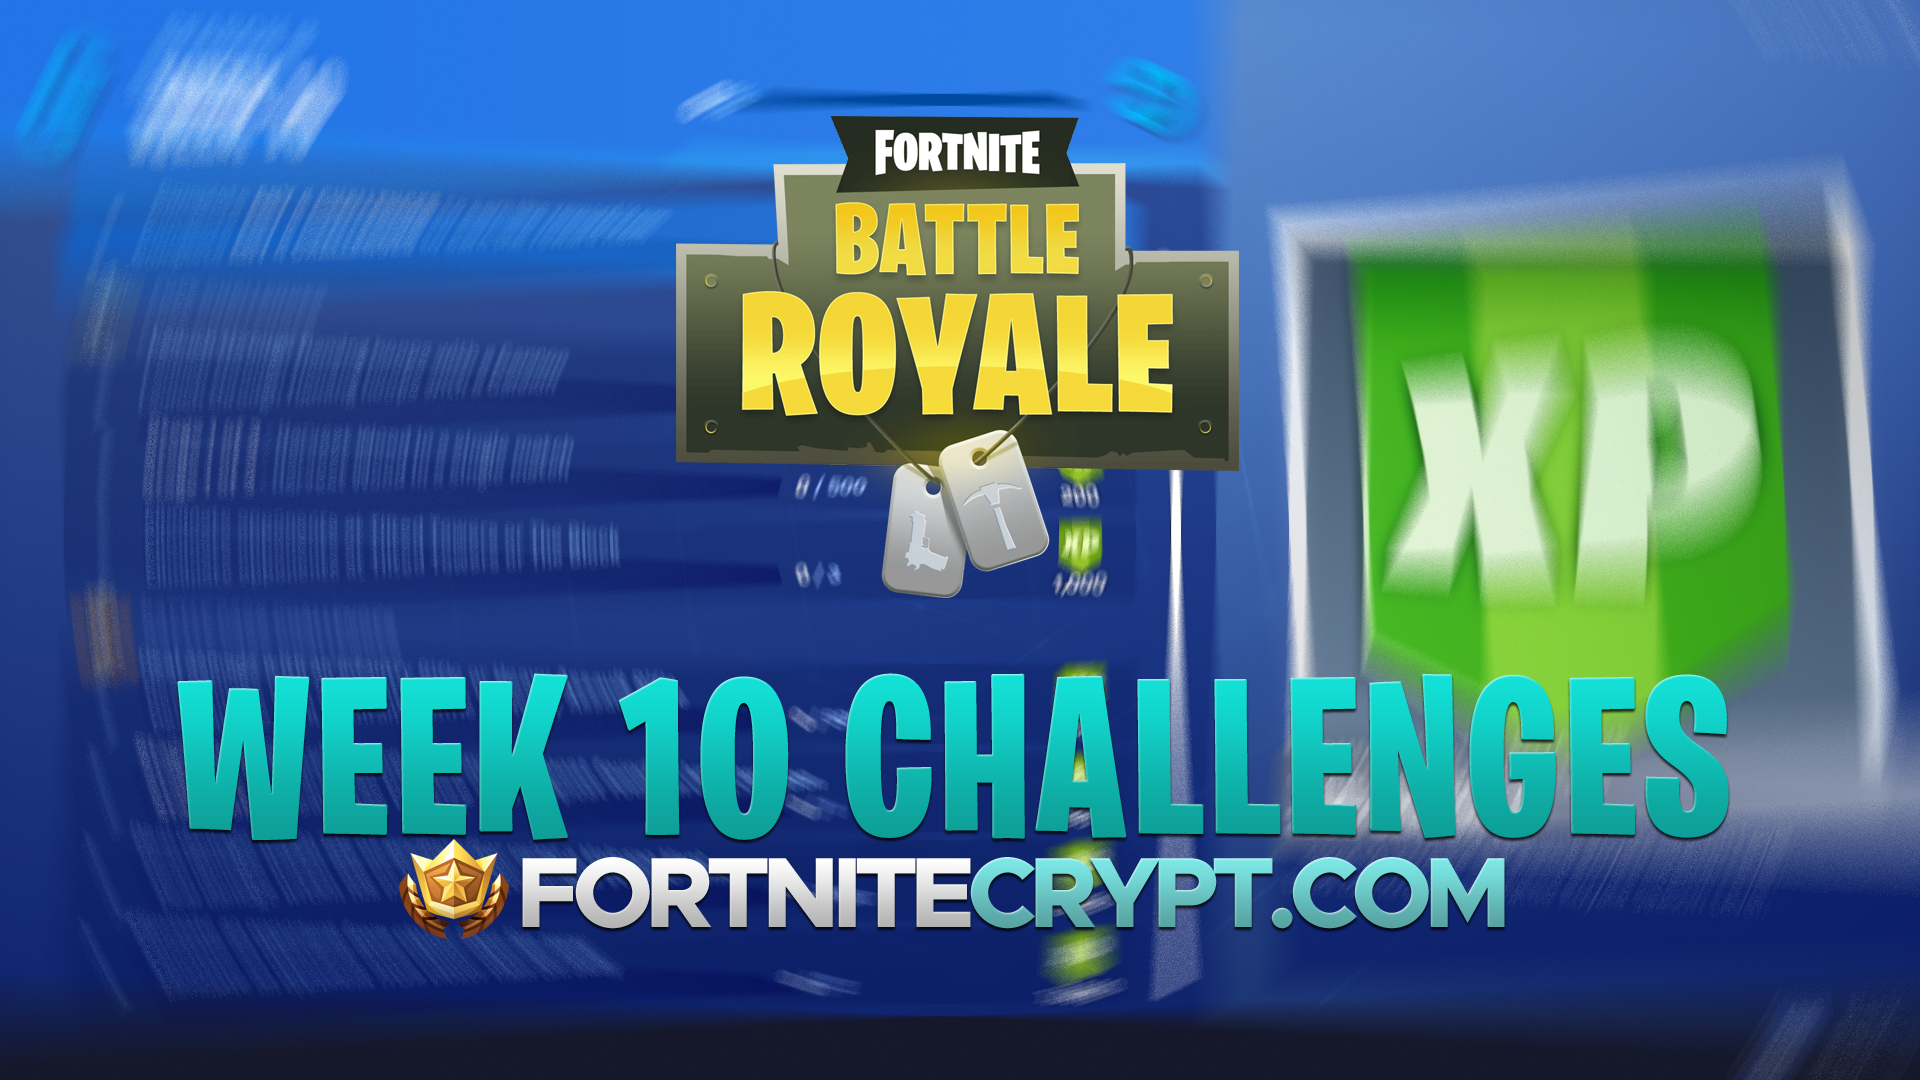 Fortnite Season 8 Week 10 Challenges And How To Complete Them